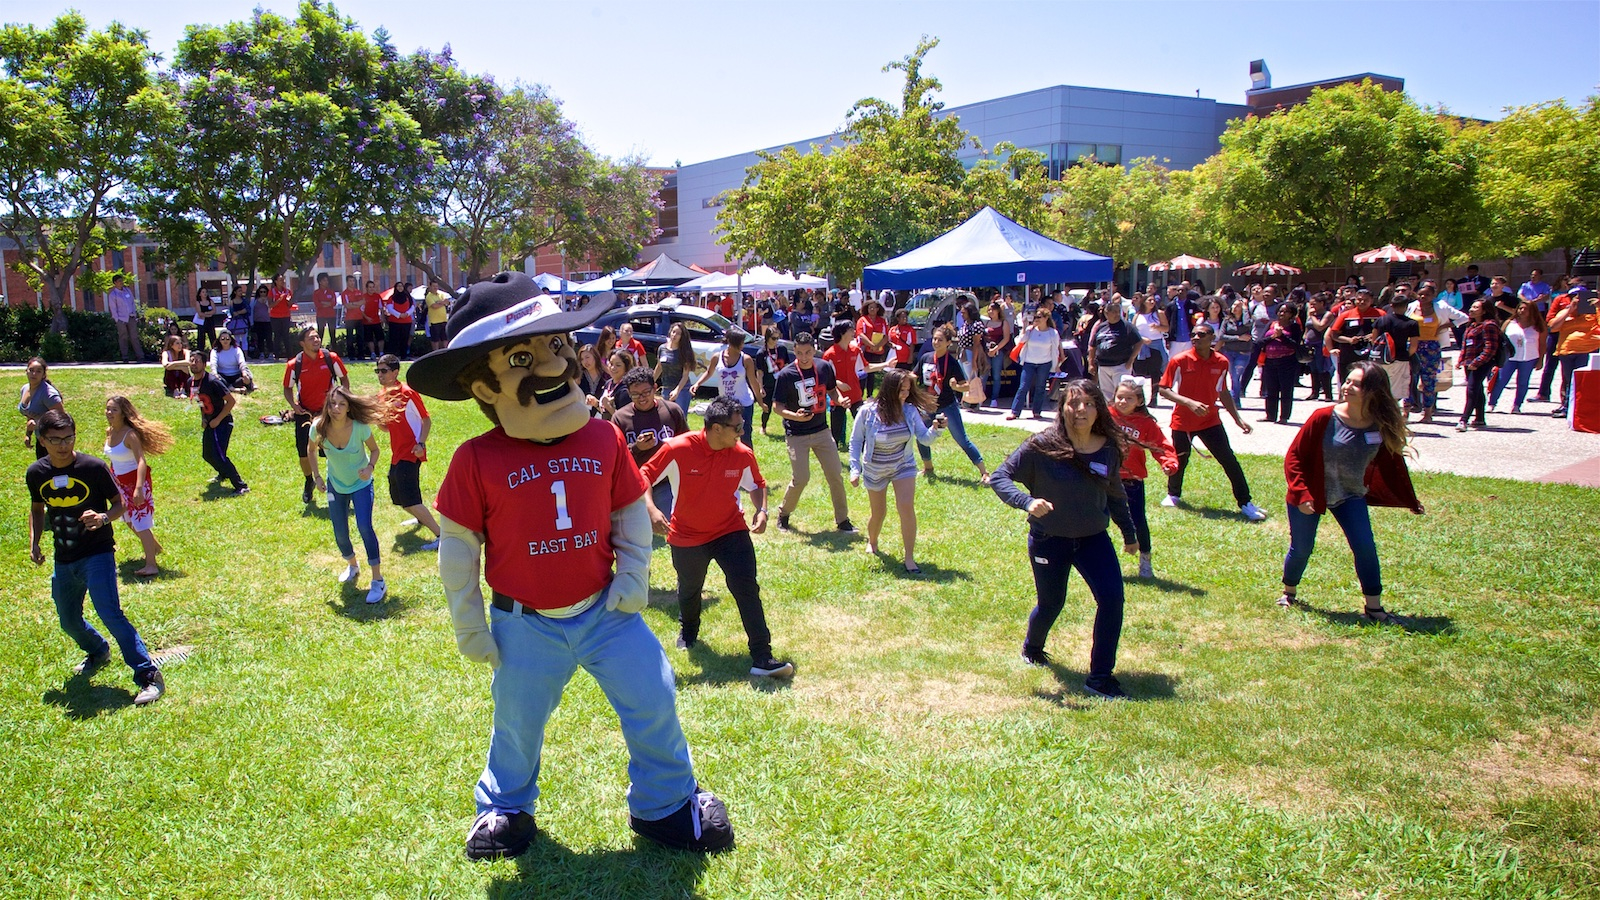 Fall 2019 Admitted Students with Fall Break For Cal State Eat Bay